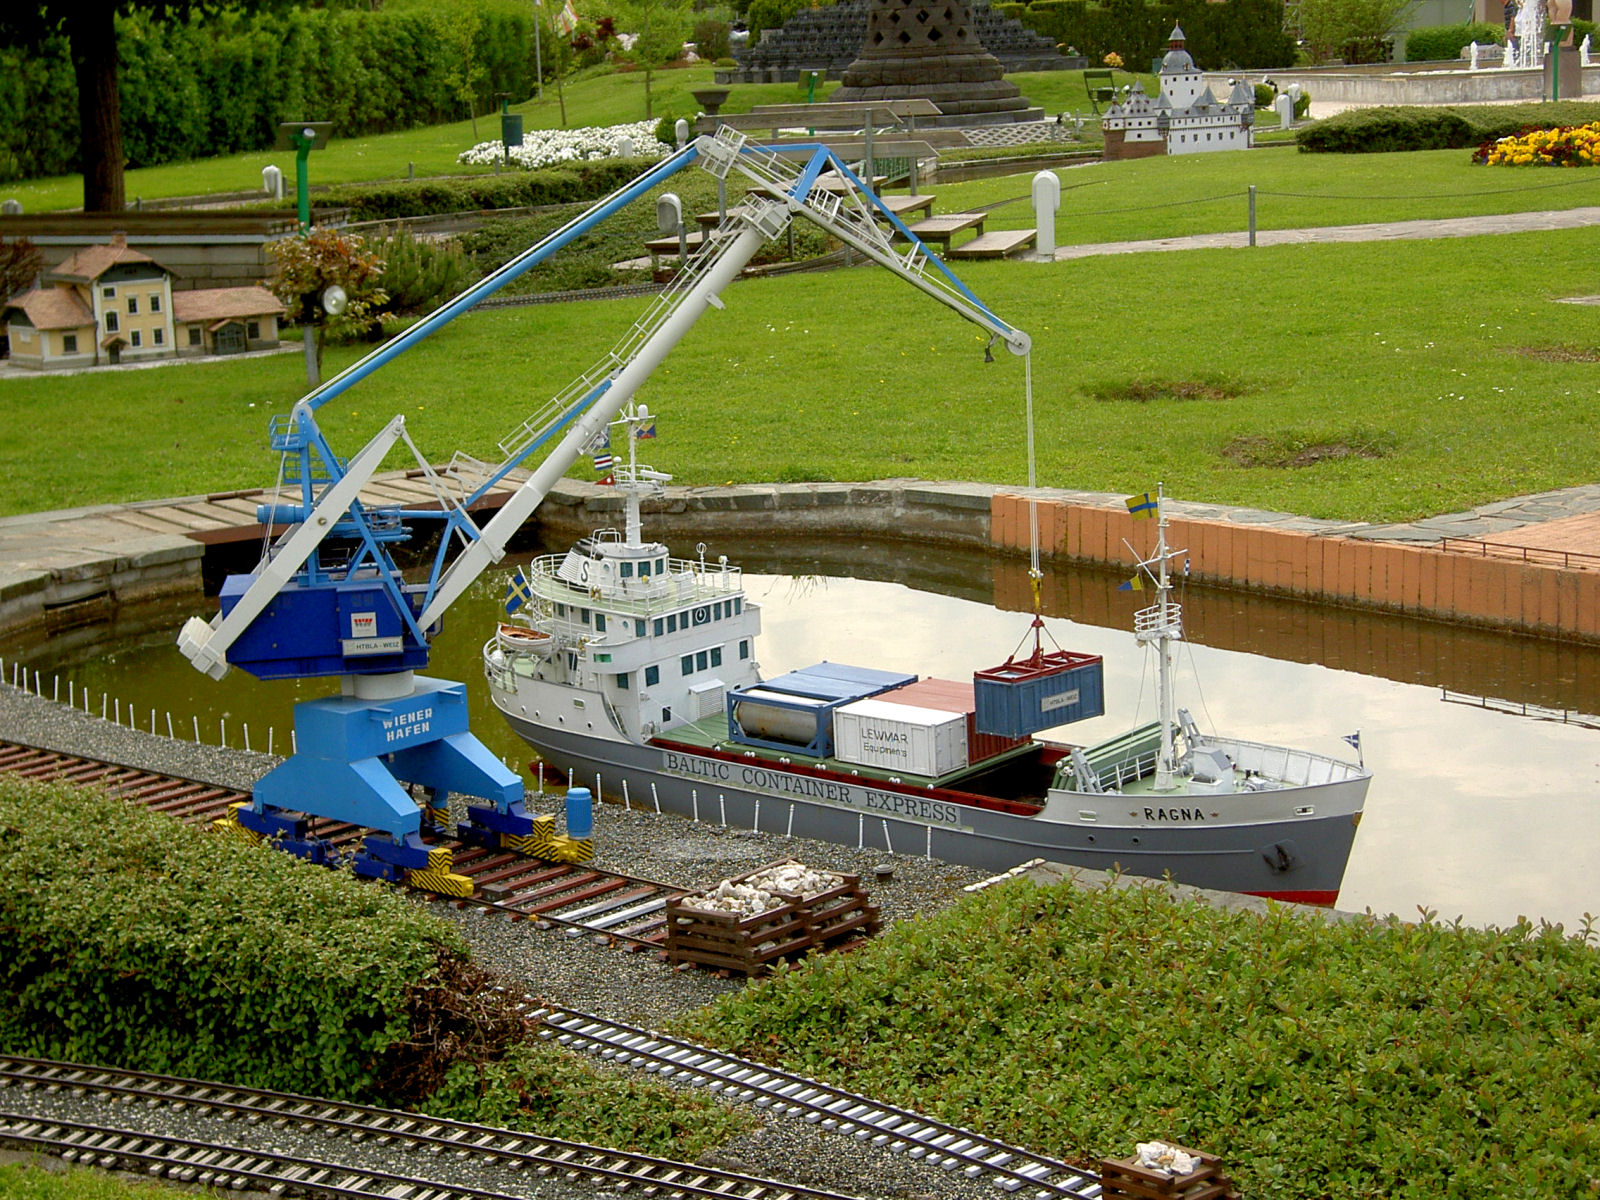 Model of the Container ship Ragna at Minimundus, Klagenfurt, Austria